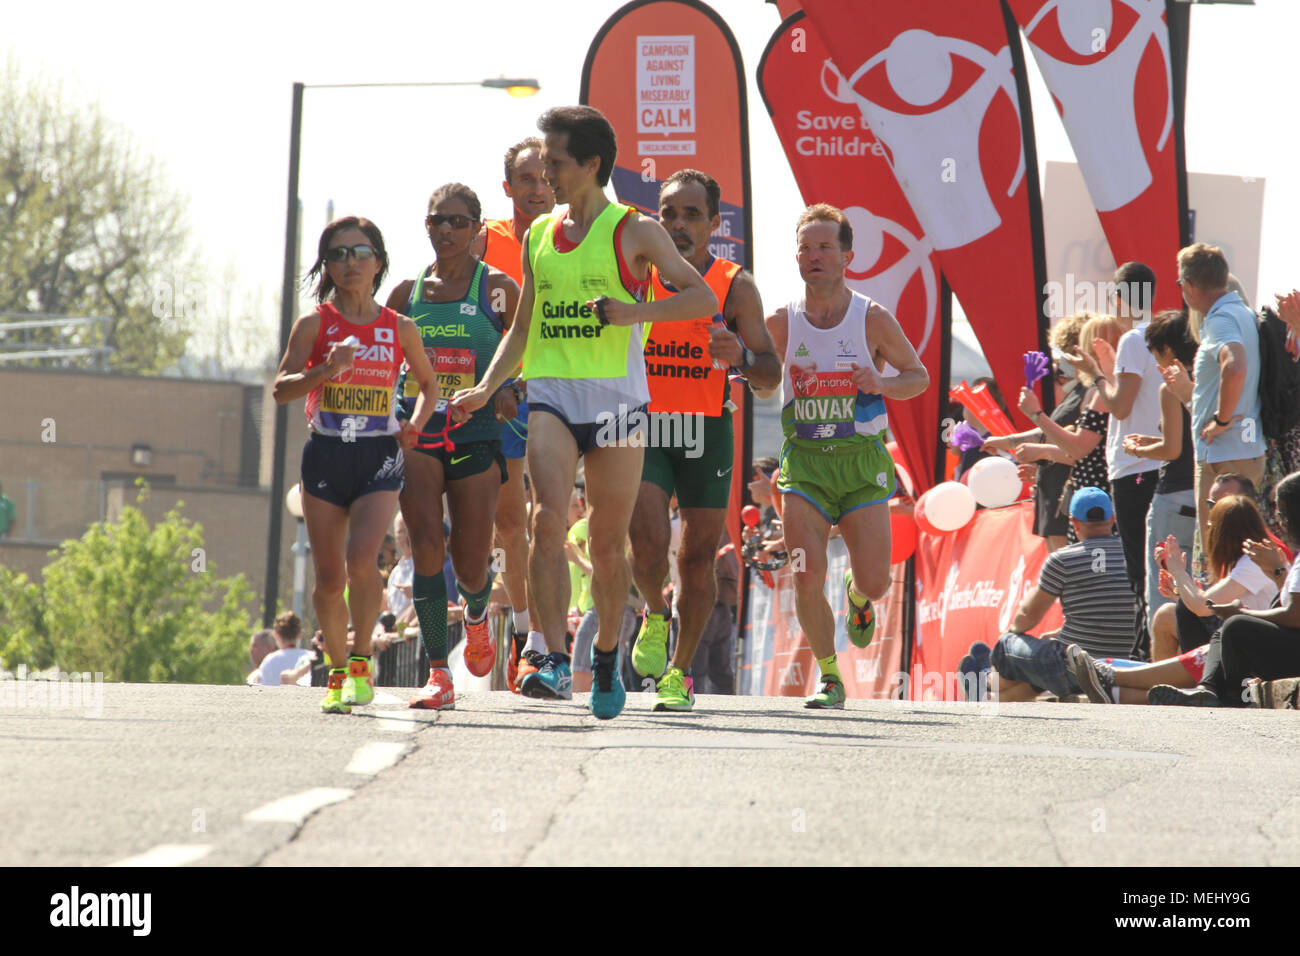 London, United Kingdom - April 22: Misato Michishita, who retained the women's T11/12 title in 3:04:00, races towards the 17 mile mark at Madchutte during the Virgin Money London Marathon on April 22, 2018. Over 40,000 are expected to start the 26.2 miles run from Greenwich to Westminster.© David Mbiyu/Alamy Live News - Stock Image